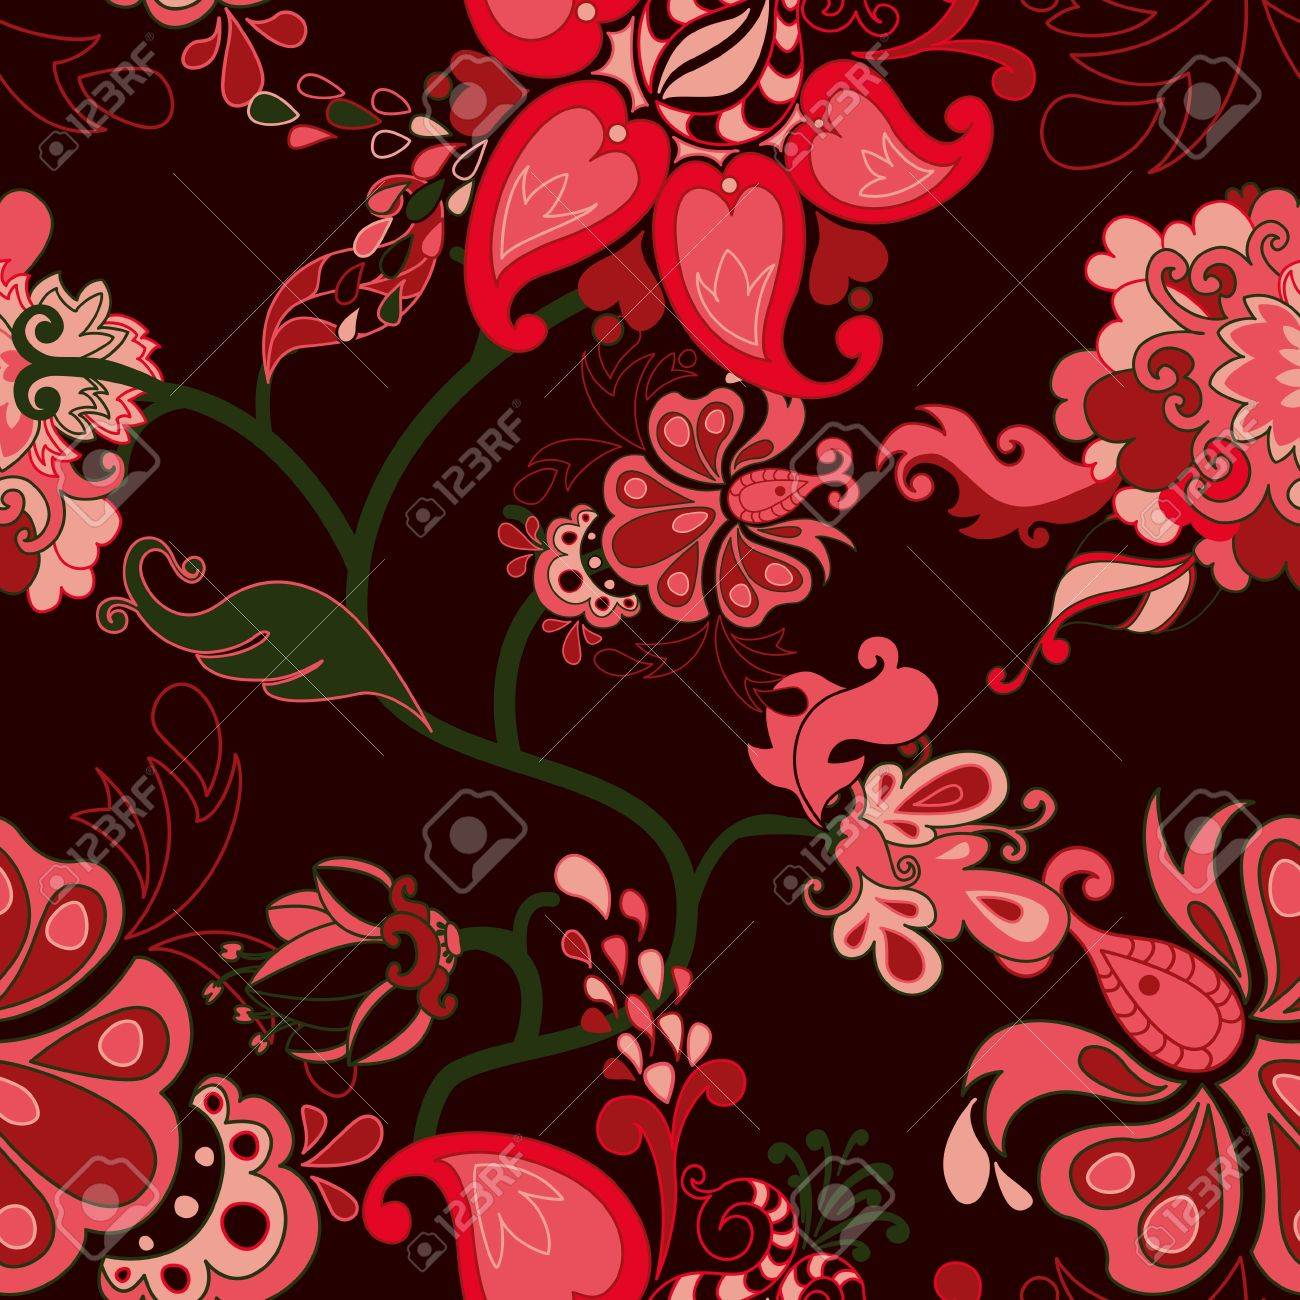 Abstract floral seamless pattern. Stock Vector - 13625627